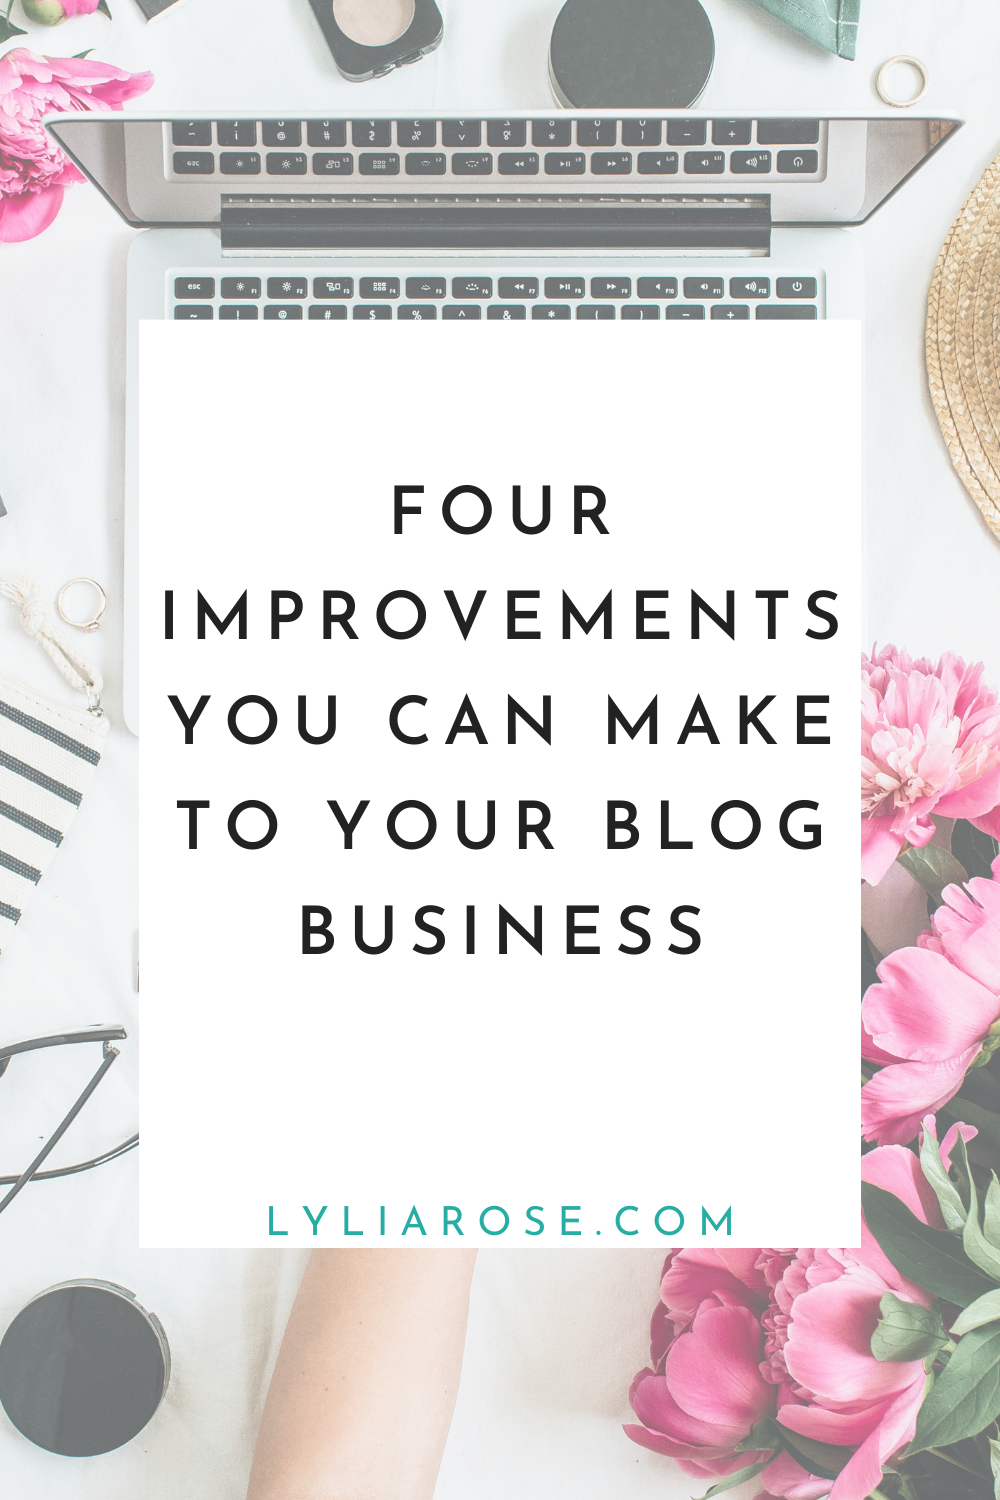 Four improvements you can make to your blog business (5)